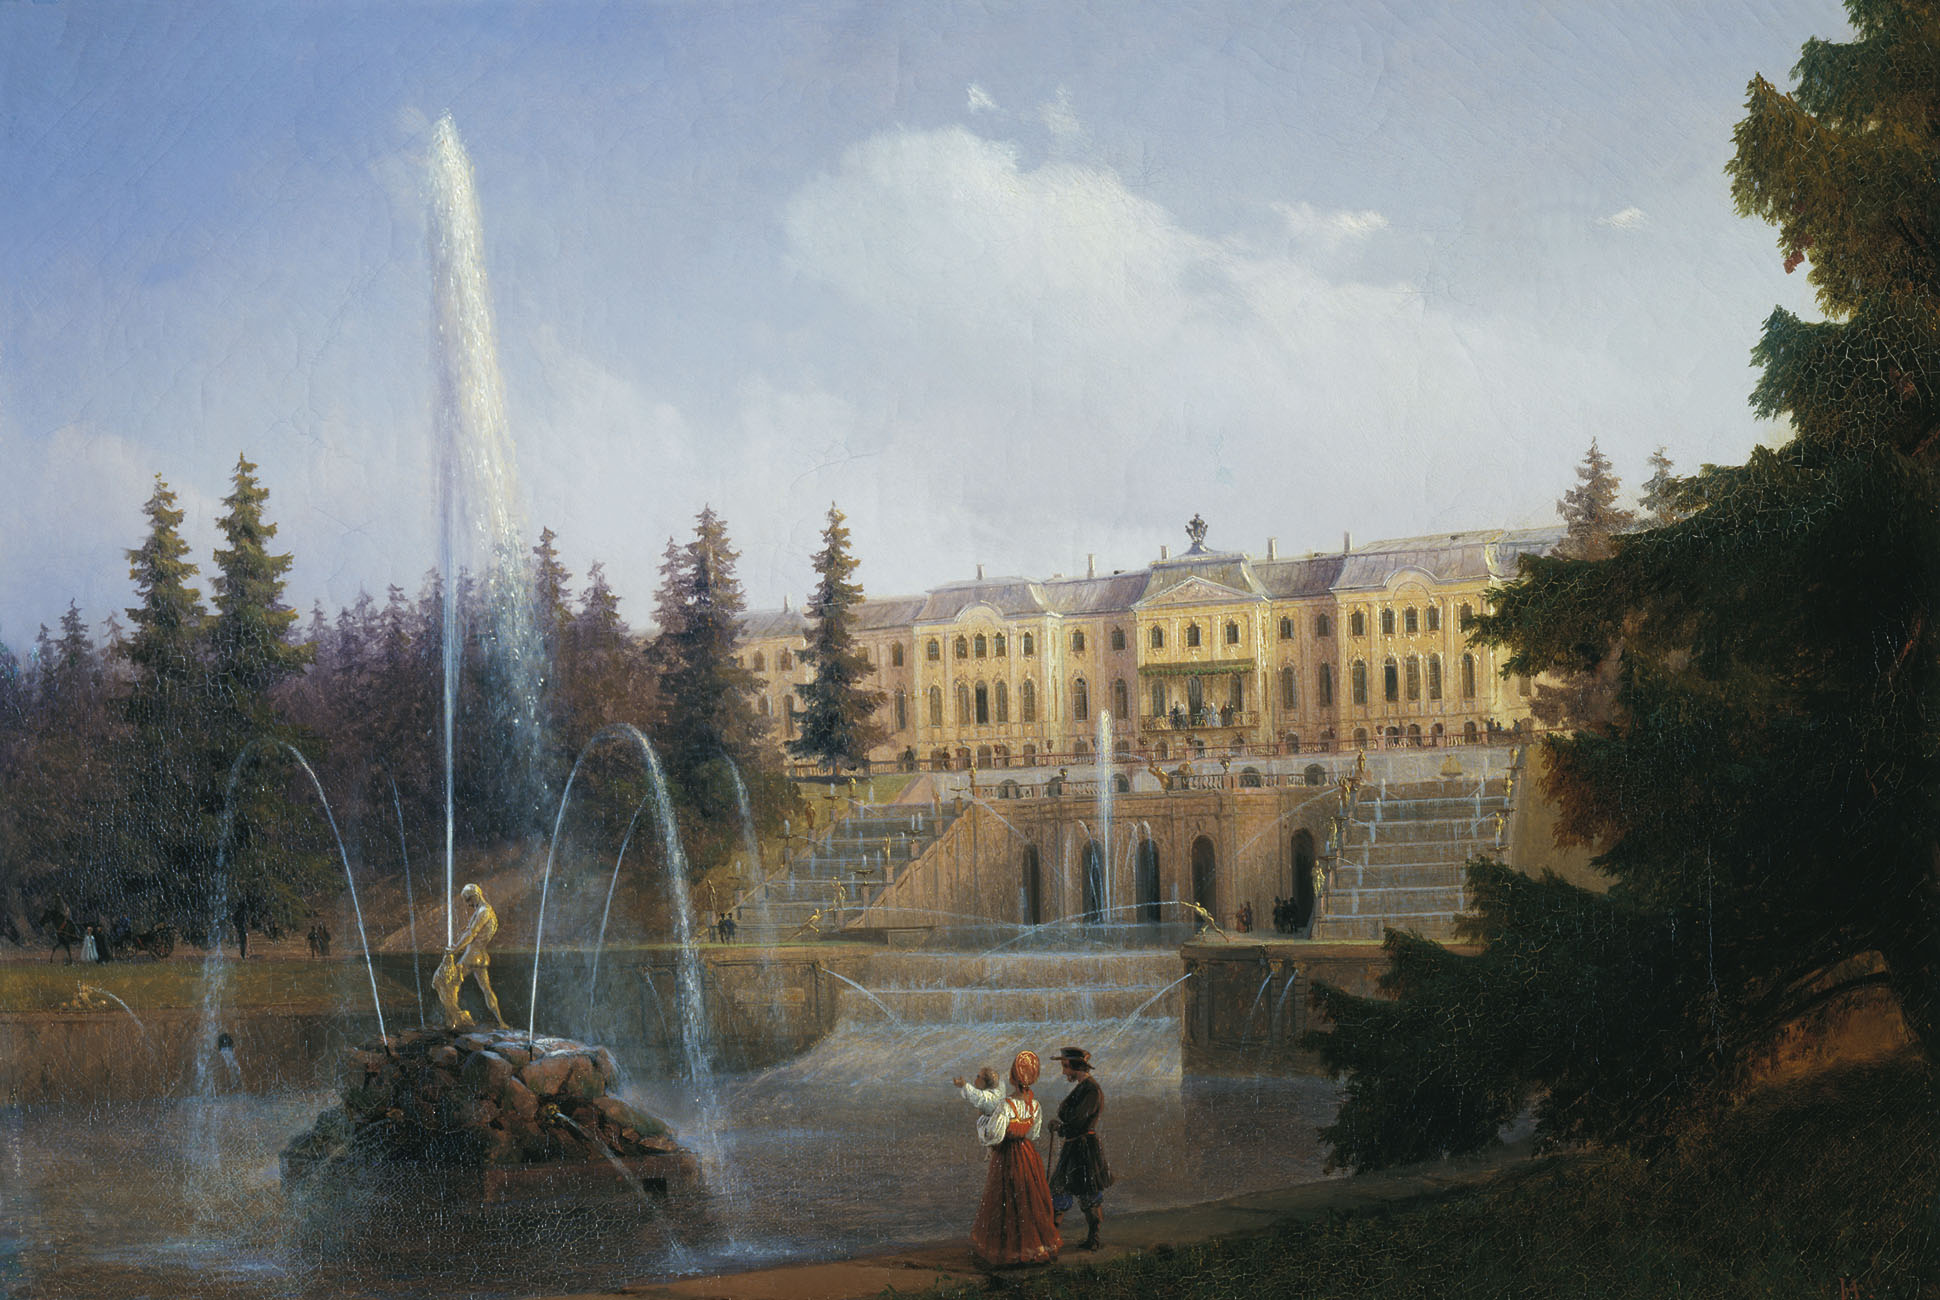 View of the Big Cascade in Petergof and the Great Palace of Petergof, 1837